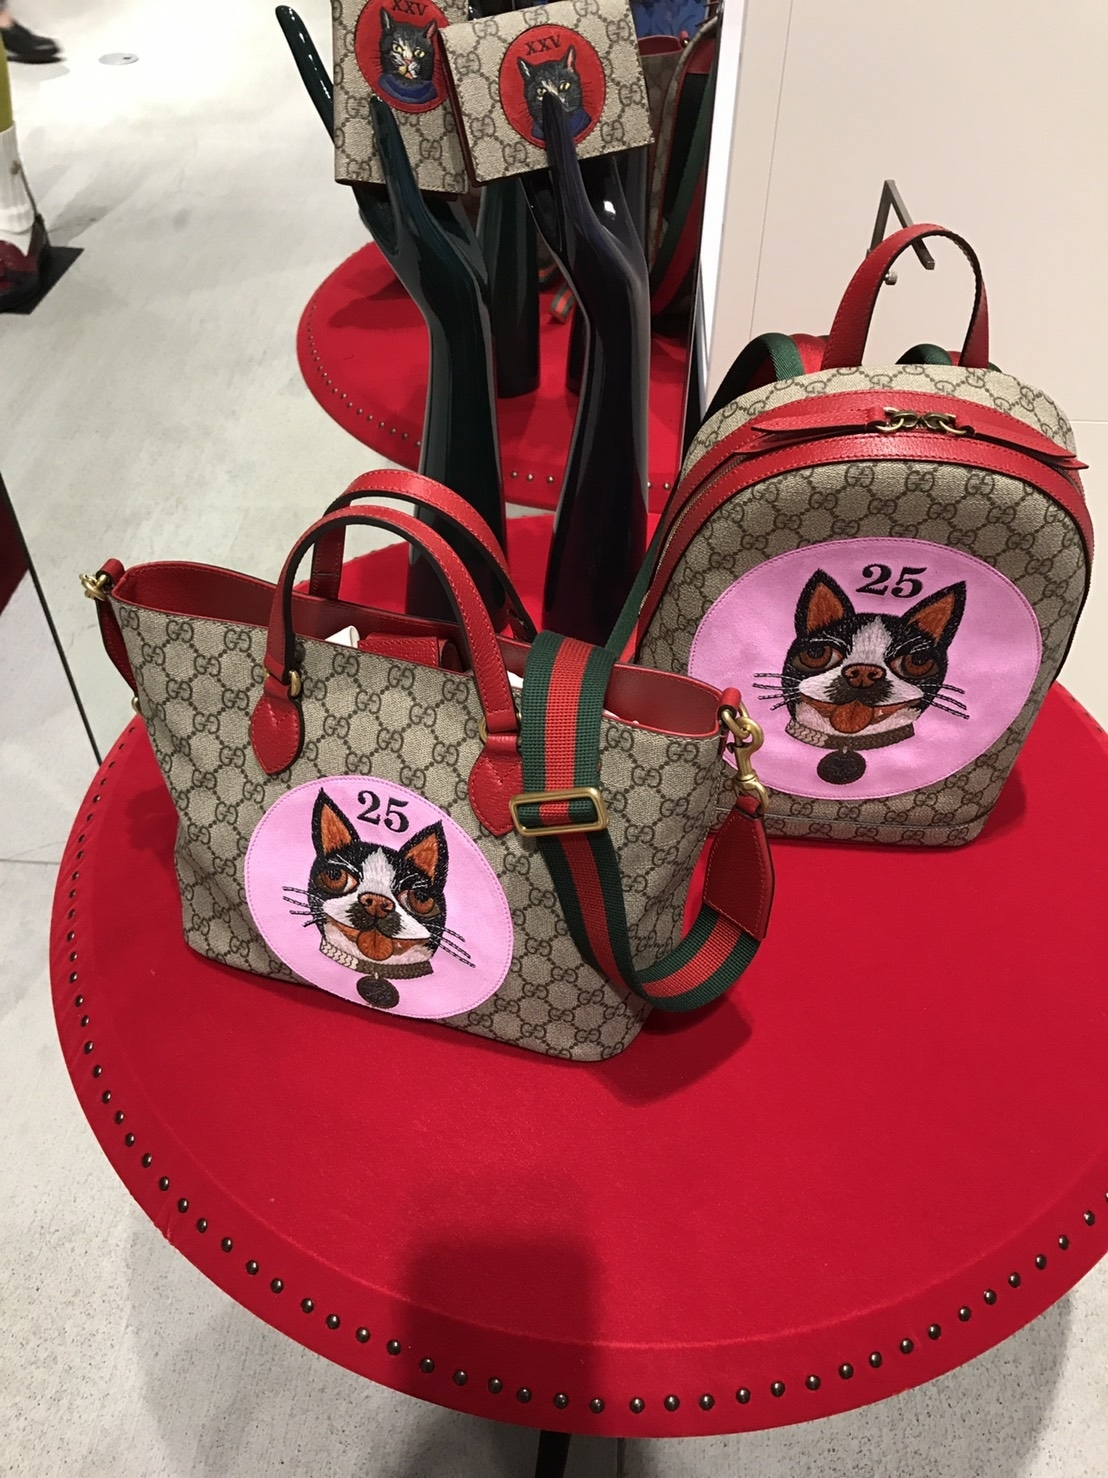 GUCCI クルーズ展示会♪_d0339889_19422176.jpg